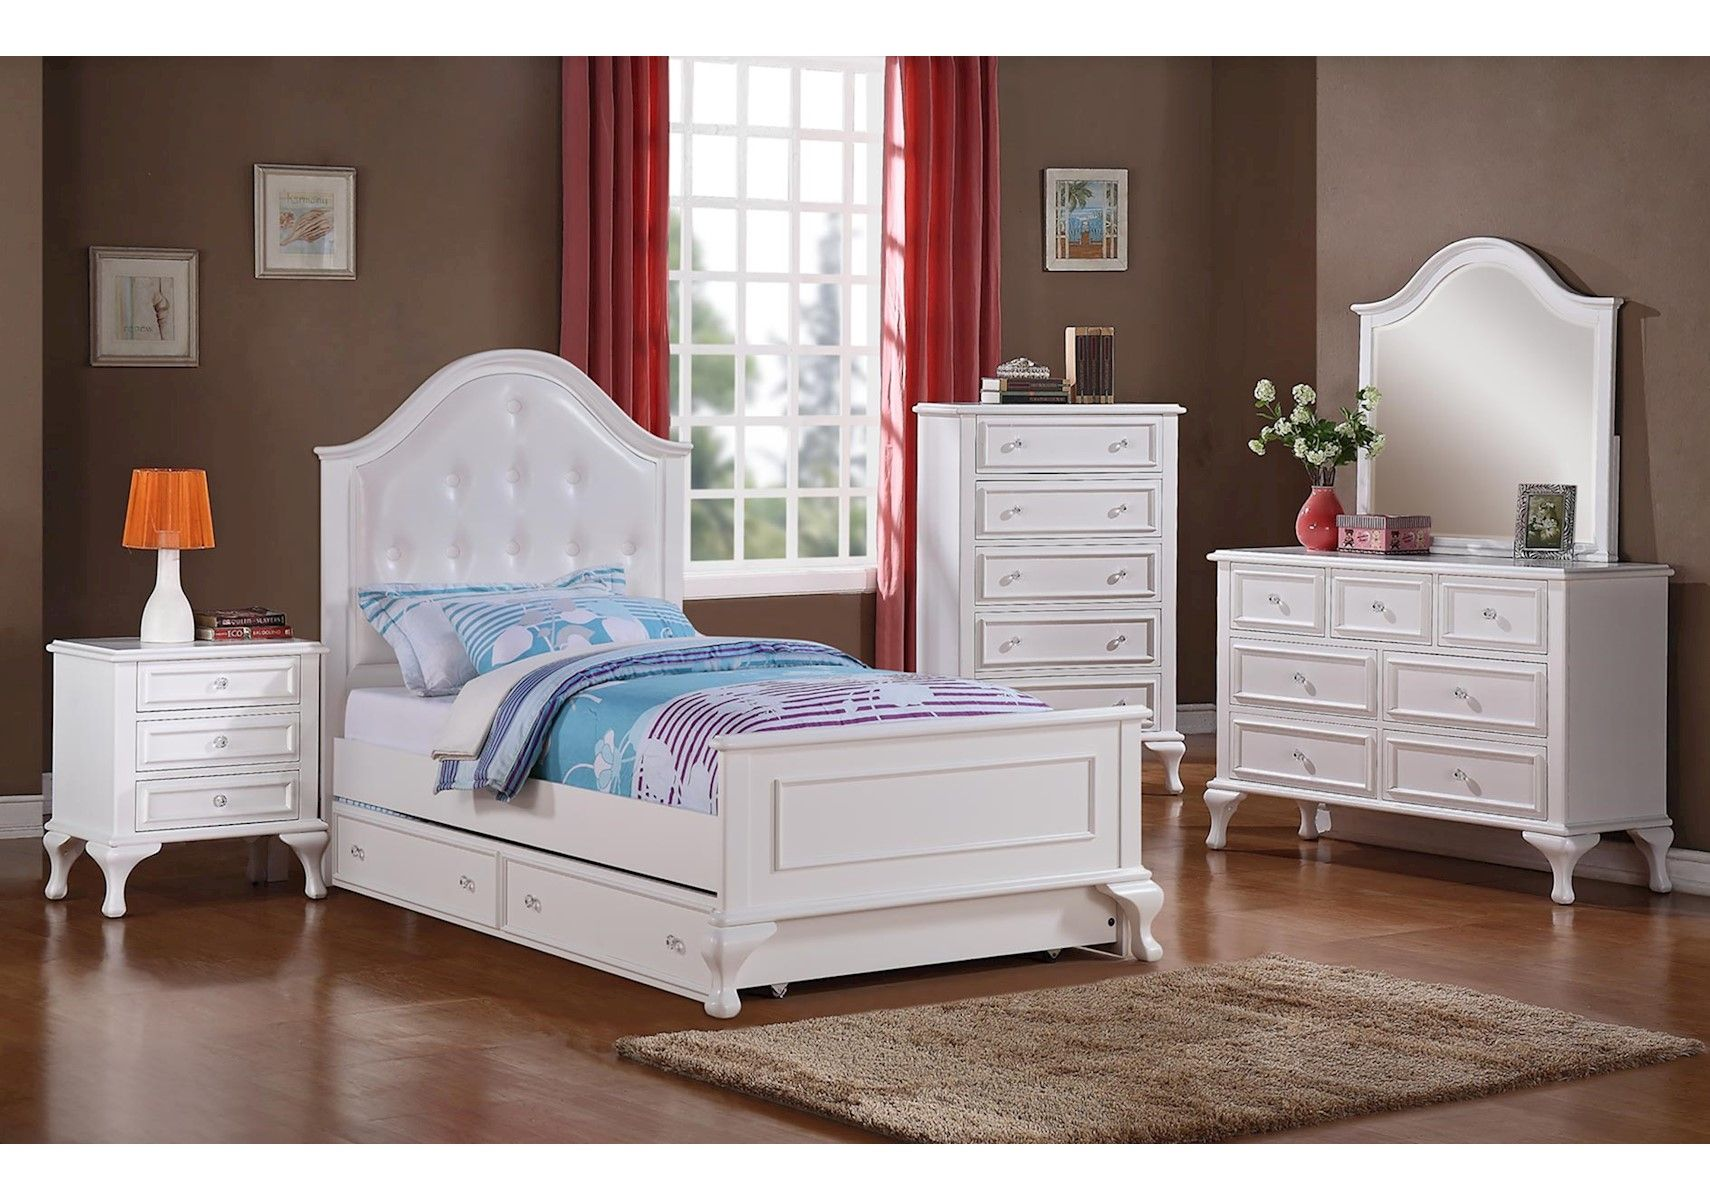 Best Lacks Jesse 4 Pc Kids Bedroom Set With Images Kids 400 x 300